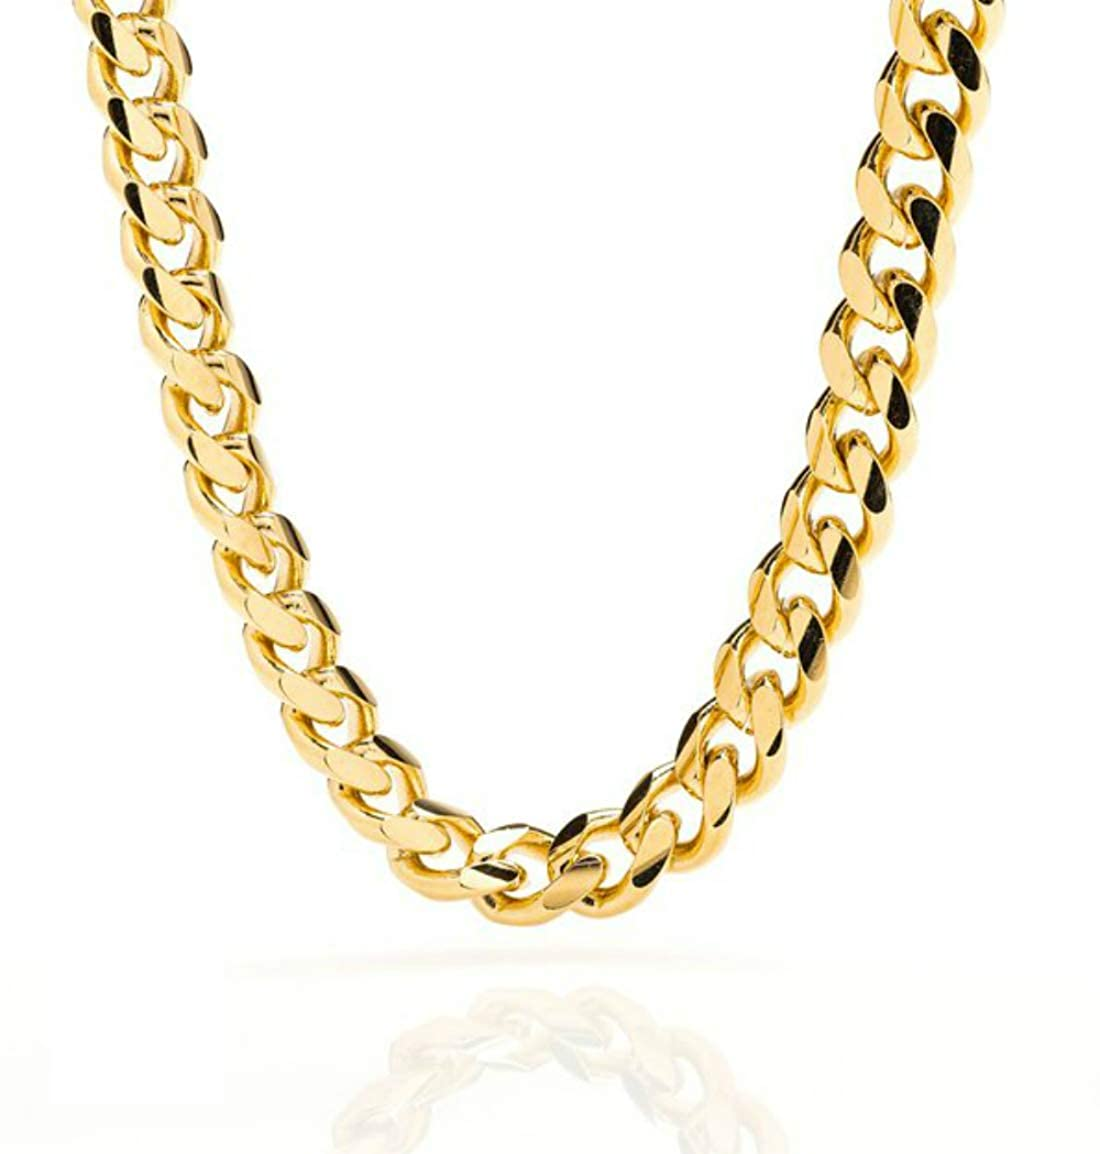 4caa8c3d01d7d Miami Cuban Link 24K Real Gold Plated Chain Necklace 9MM for Men, Hip hop,  Women, Tarnish-Resistant, Lobster Clasp, USA Made